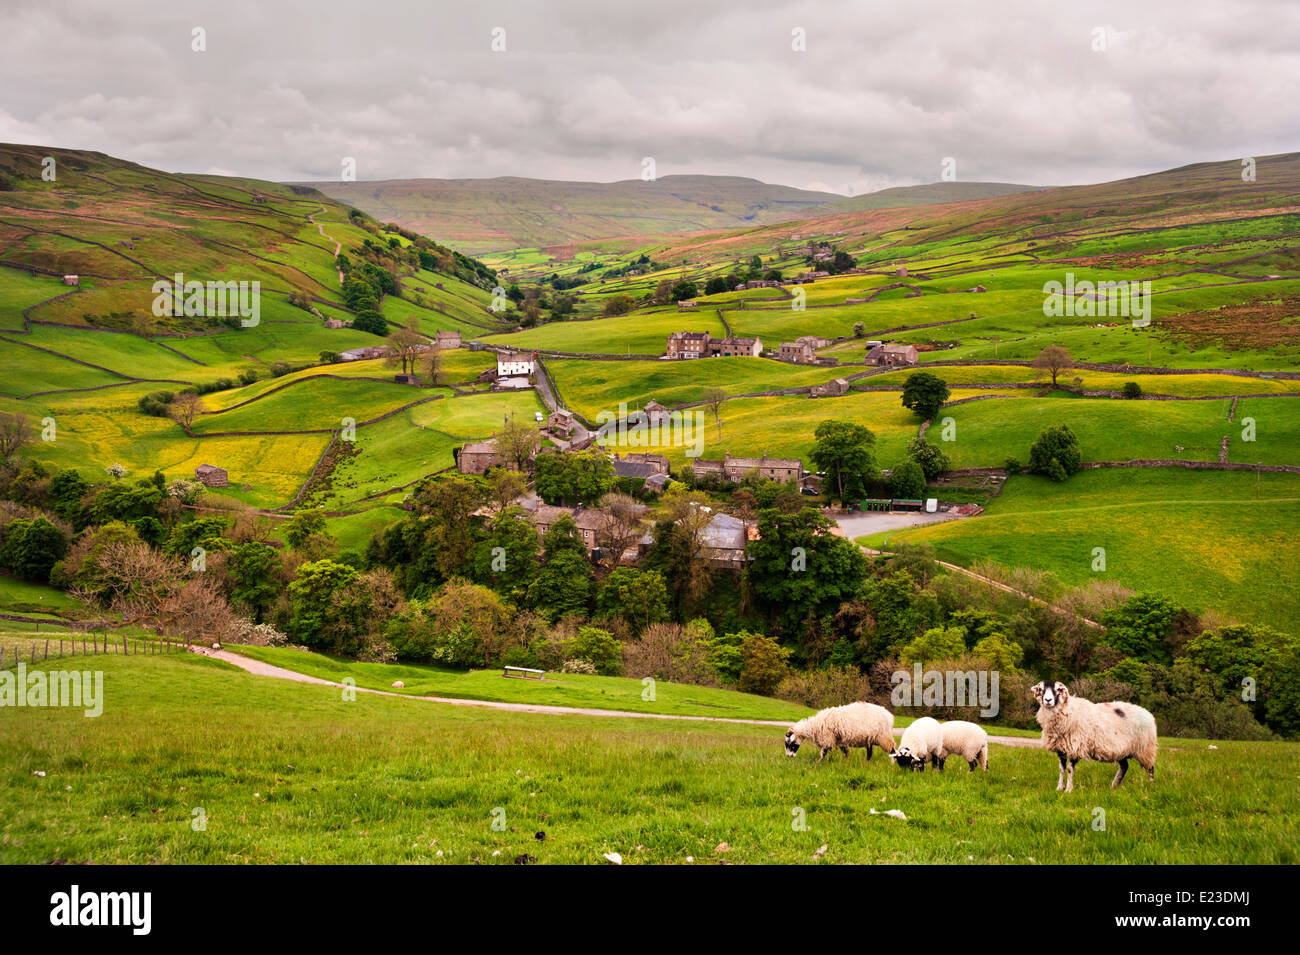 View over The Yorkshire Dales hamlet of Keld, at the junction of the Pennine Way and Coast to Coast trails, UK. - Stock Image